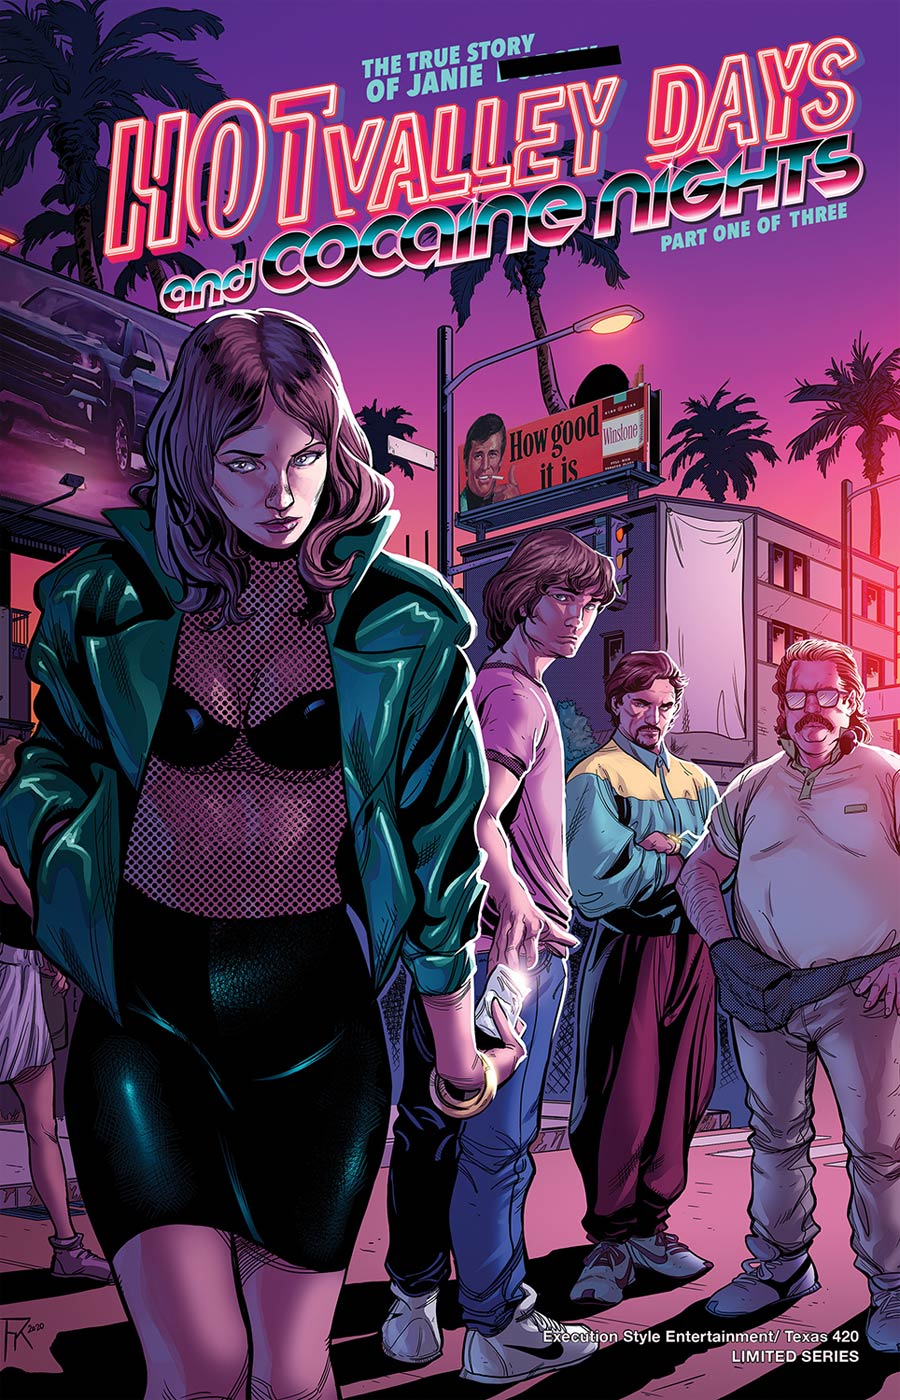 Hot Valley Days And Cocaine Nights #1 Cover A Regular Cover